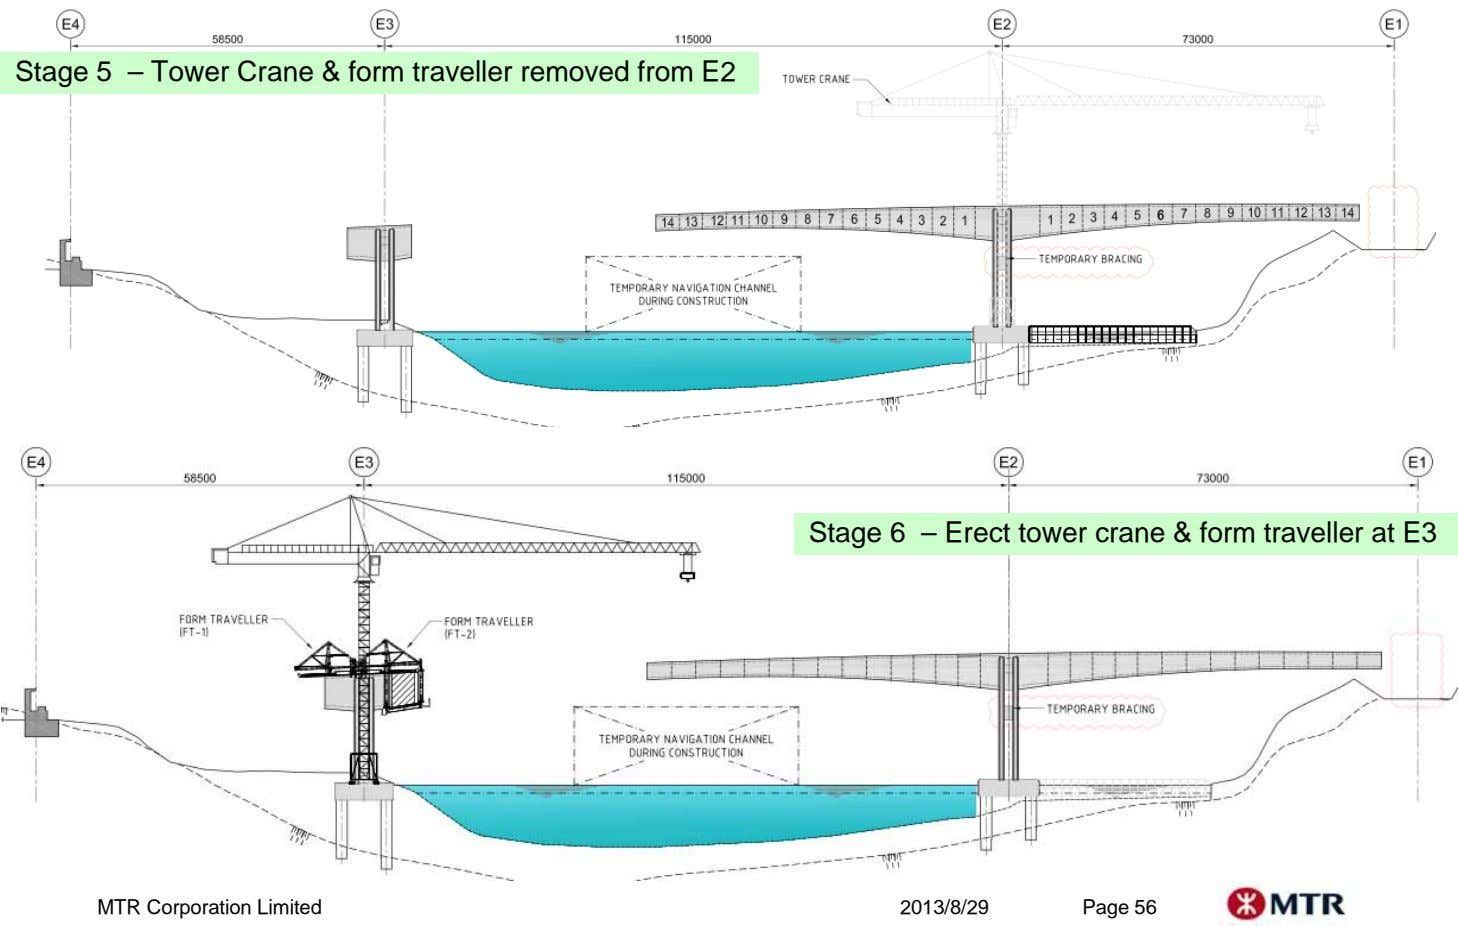 Stage 5 – Tower Crane & form traveller removed from E2 Stage 6 – Erect